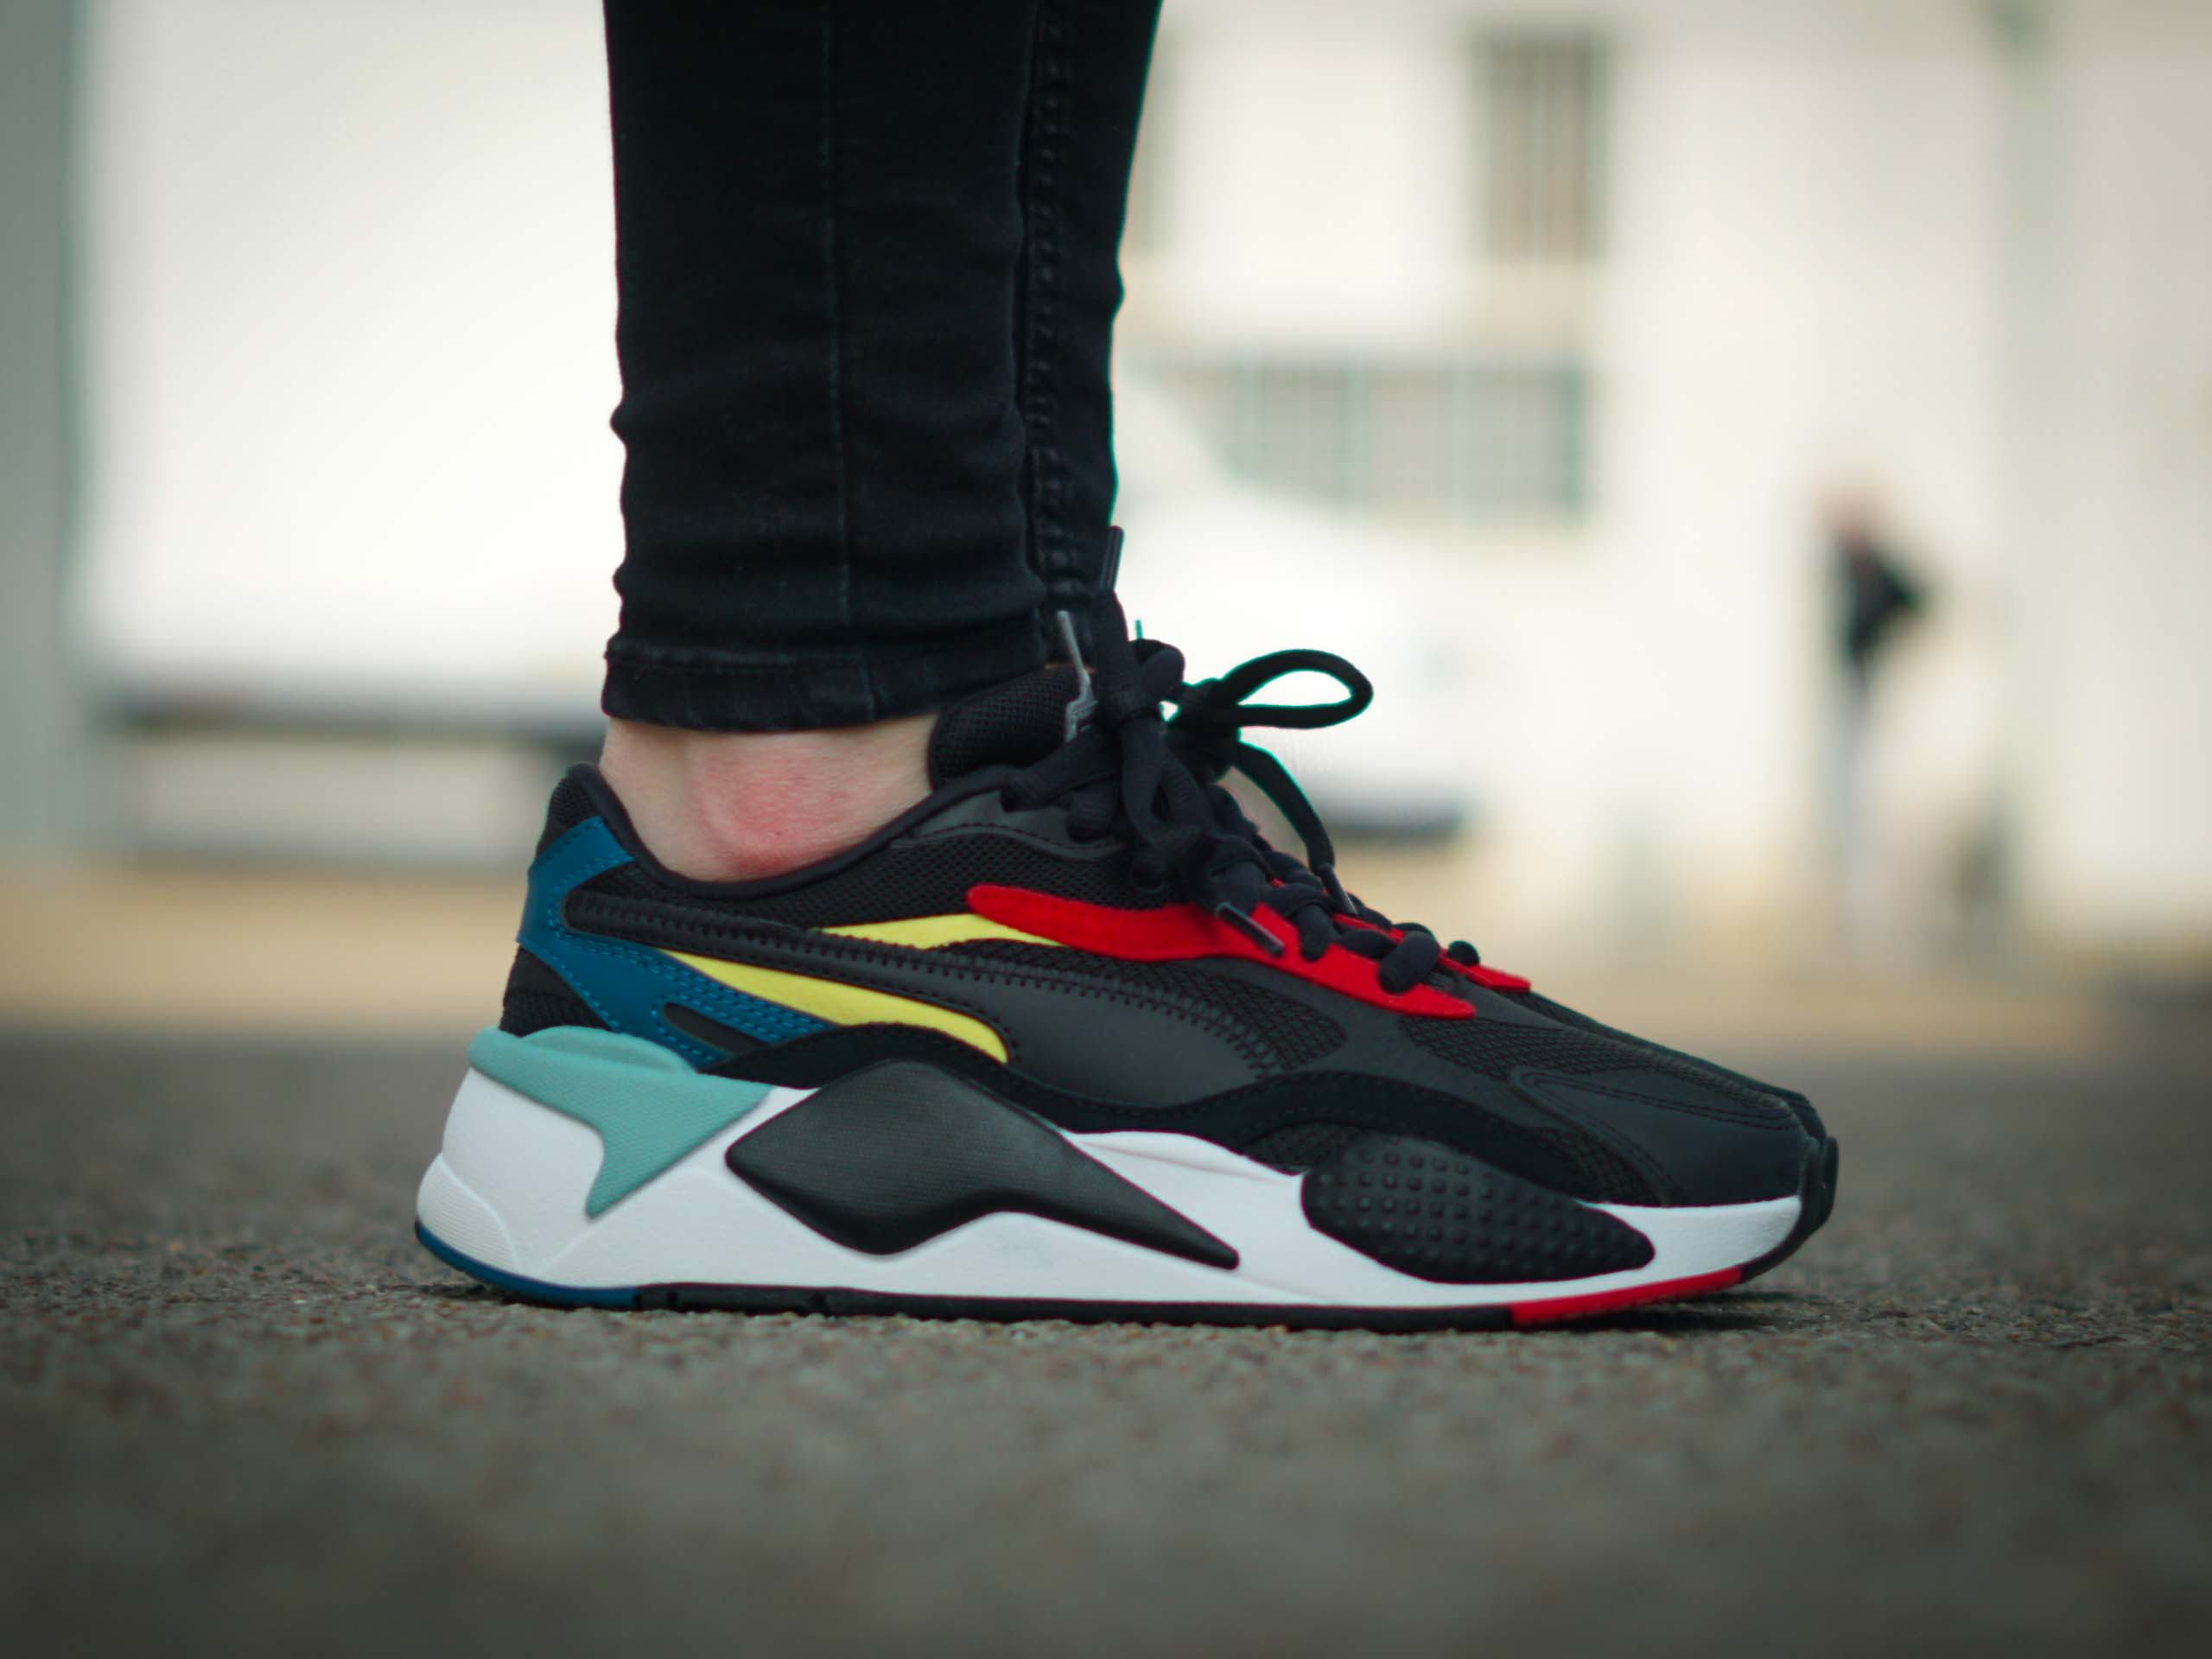 Puma - RS-X3 Puzzle 371570-25 - Sneakers - Black / White / Red ...